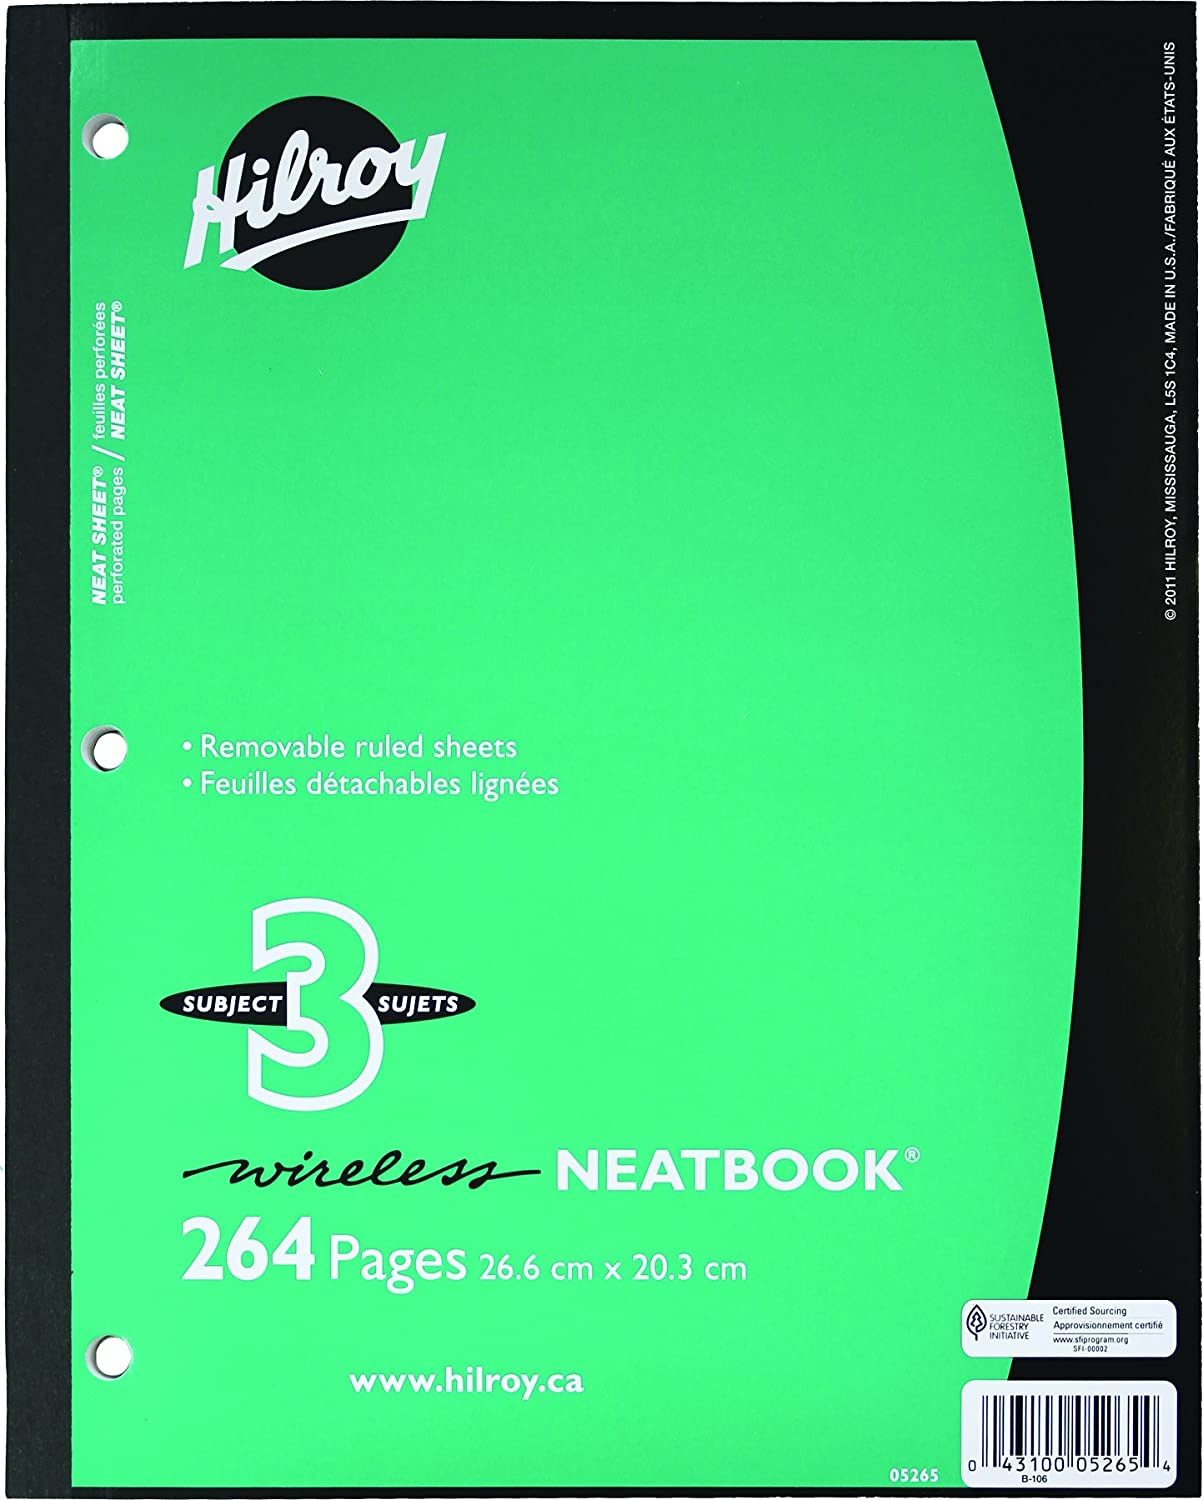 Hilroy Neatbook Wireless Notebook, 3 Subject, 132 Sheets/264 Pages, 10-1/2 X 8 Inches, Assorted Colors (05265)